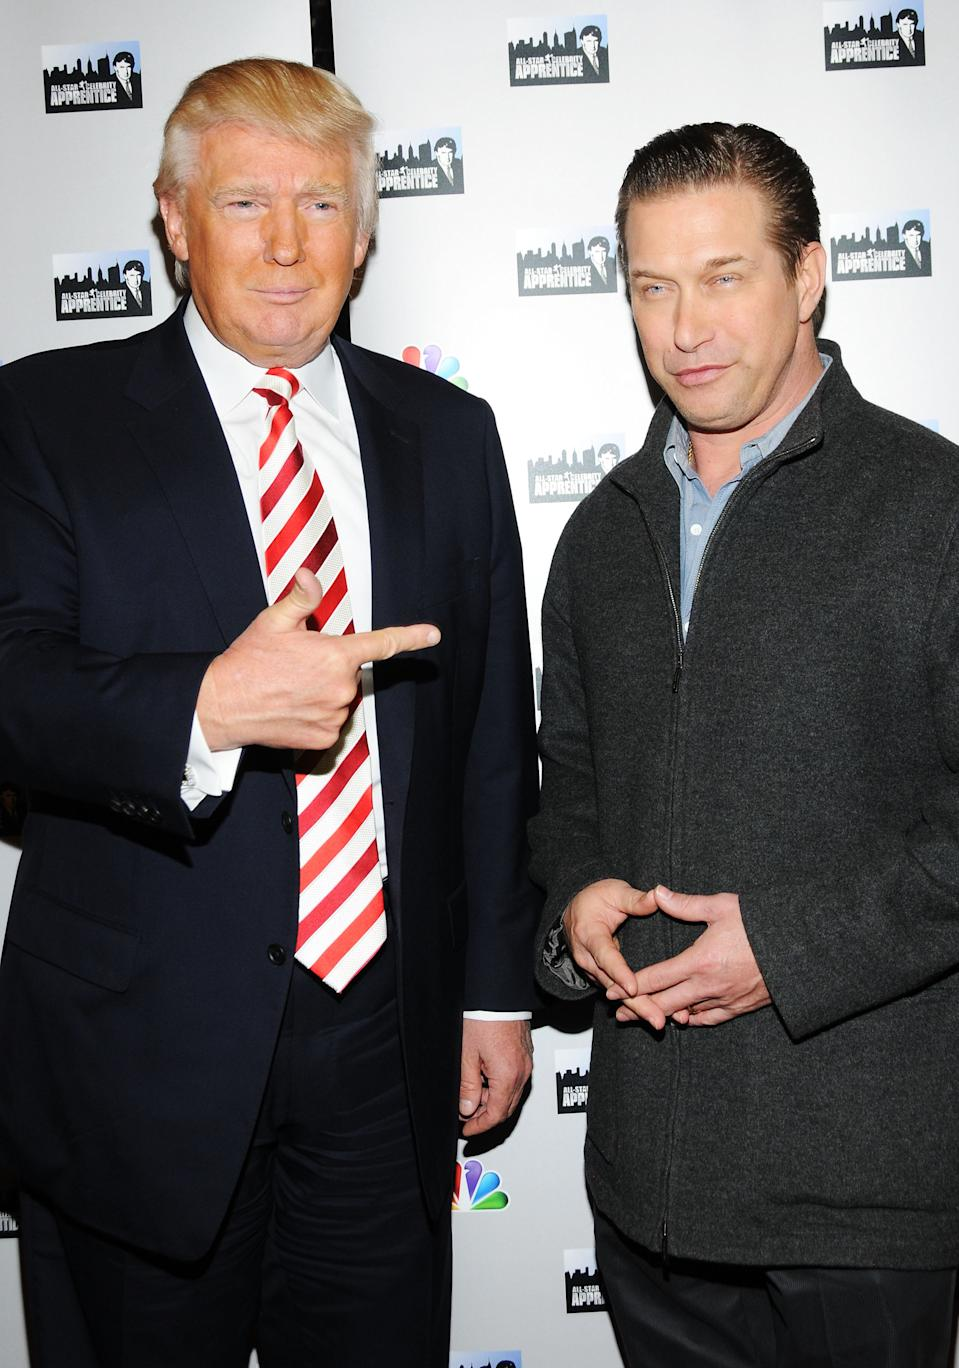 """Donald Trump and actor Stephen Baldwin attend the """"All-Star Celebrity Apprentice"""" Red Carpet Event at Trump Tower on April 16, 2013 in New York City."""